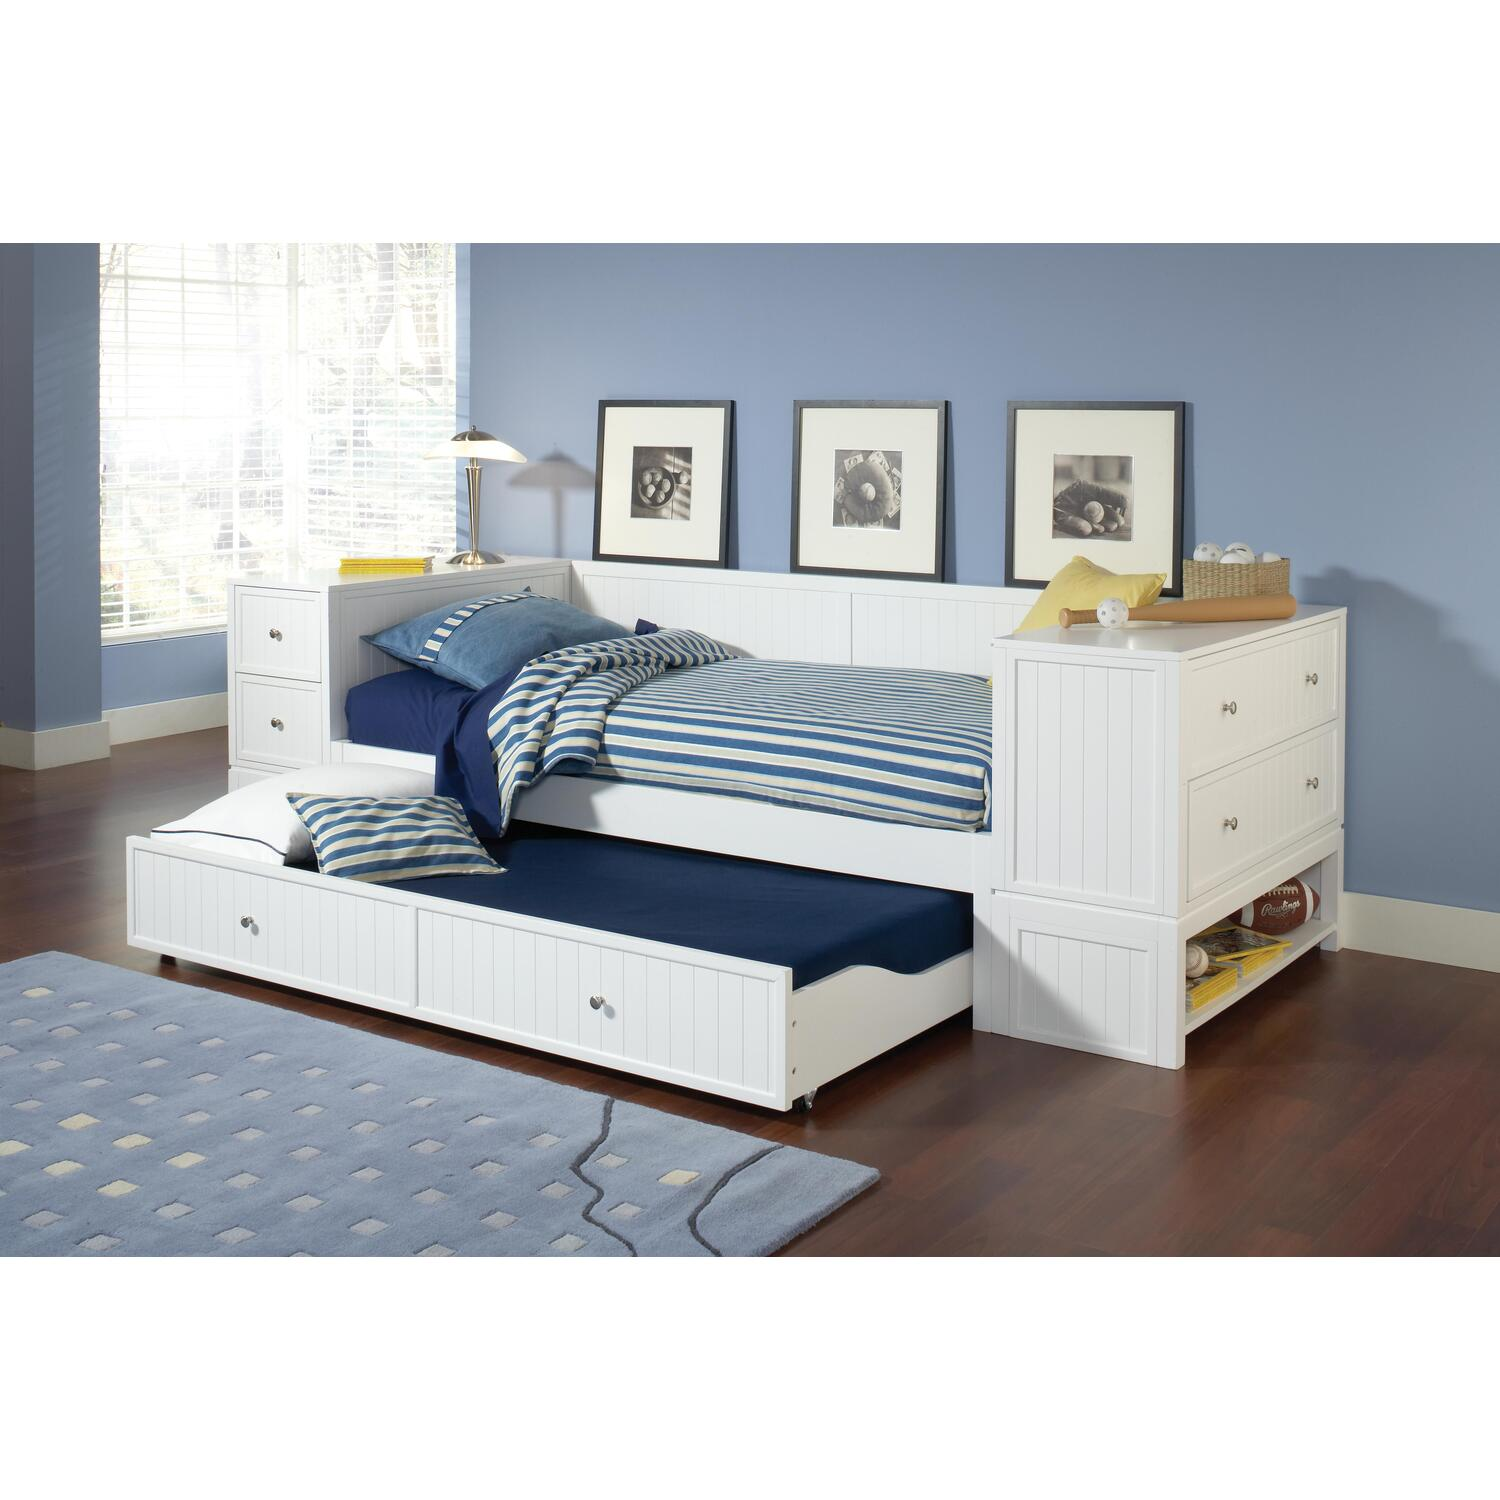 New Bookcase Toy Box White Finish Bedroom Playroom Child: Hillsdale Furniture Cody 4pc Daybed Set, Includes Daybed